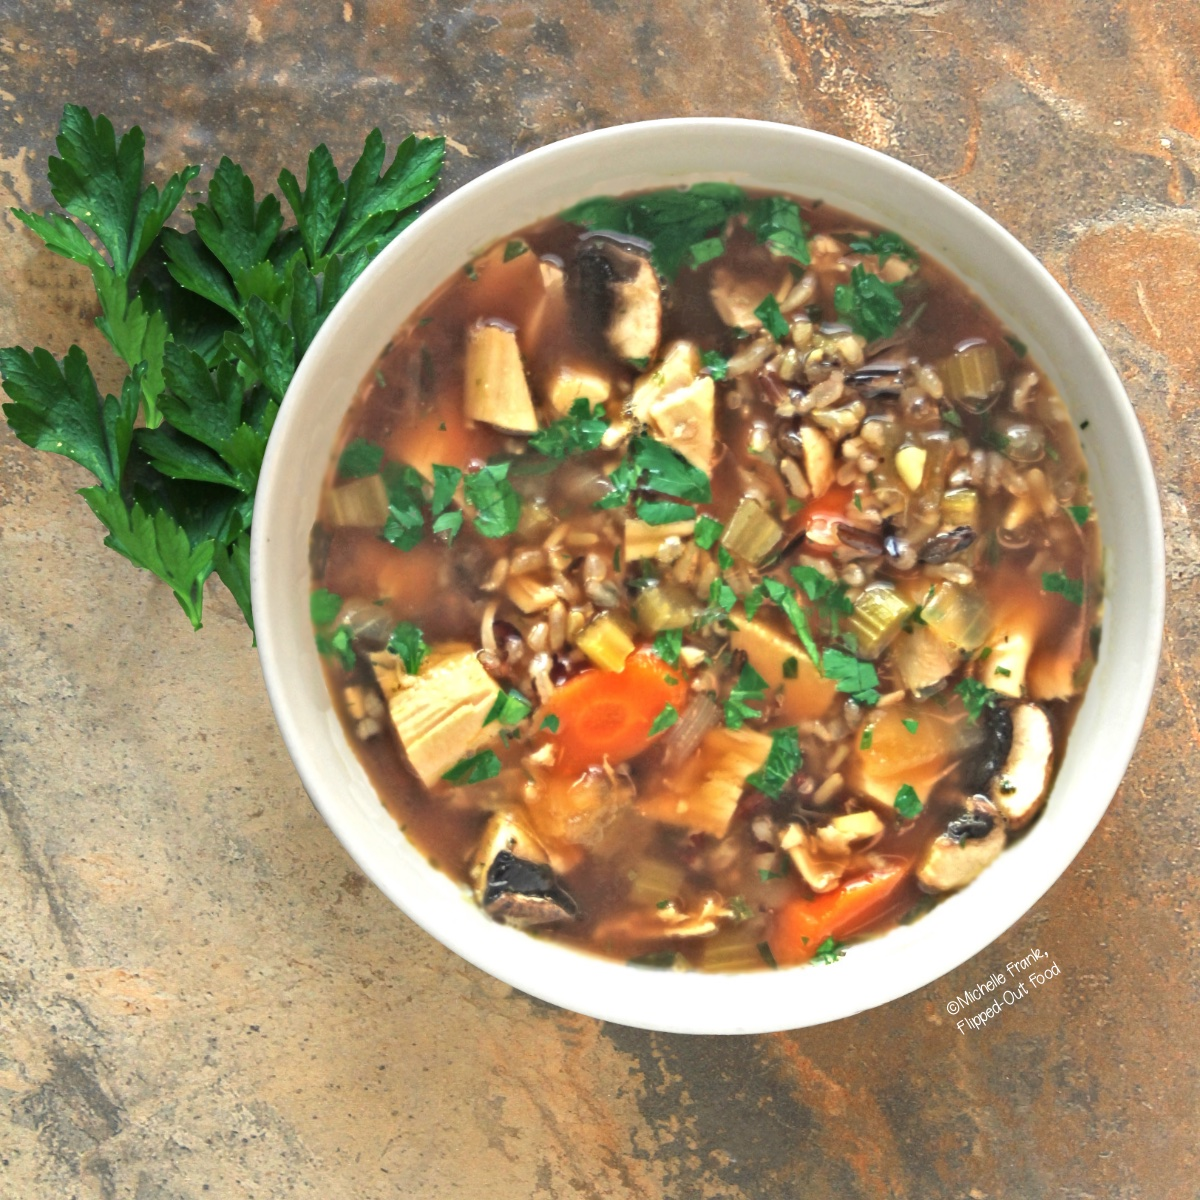 Easy Soups for Fall: Turkey Wild Rice Soup